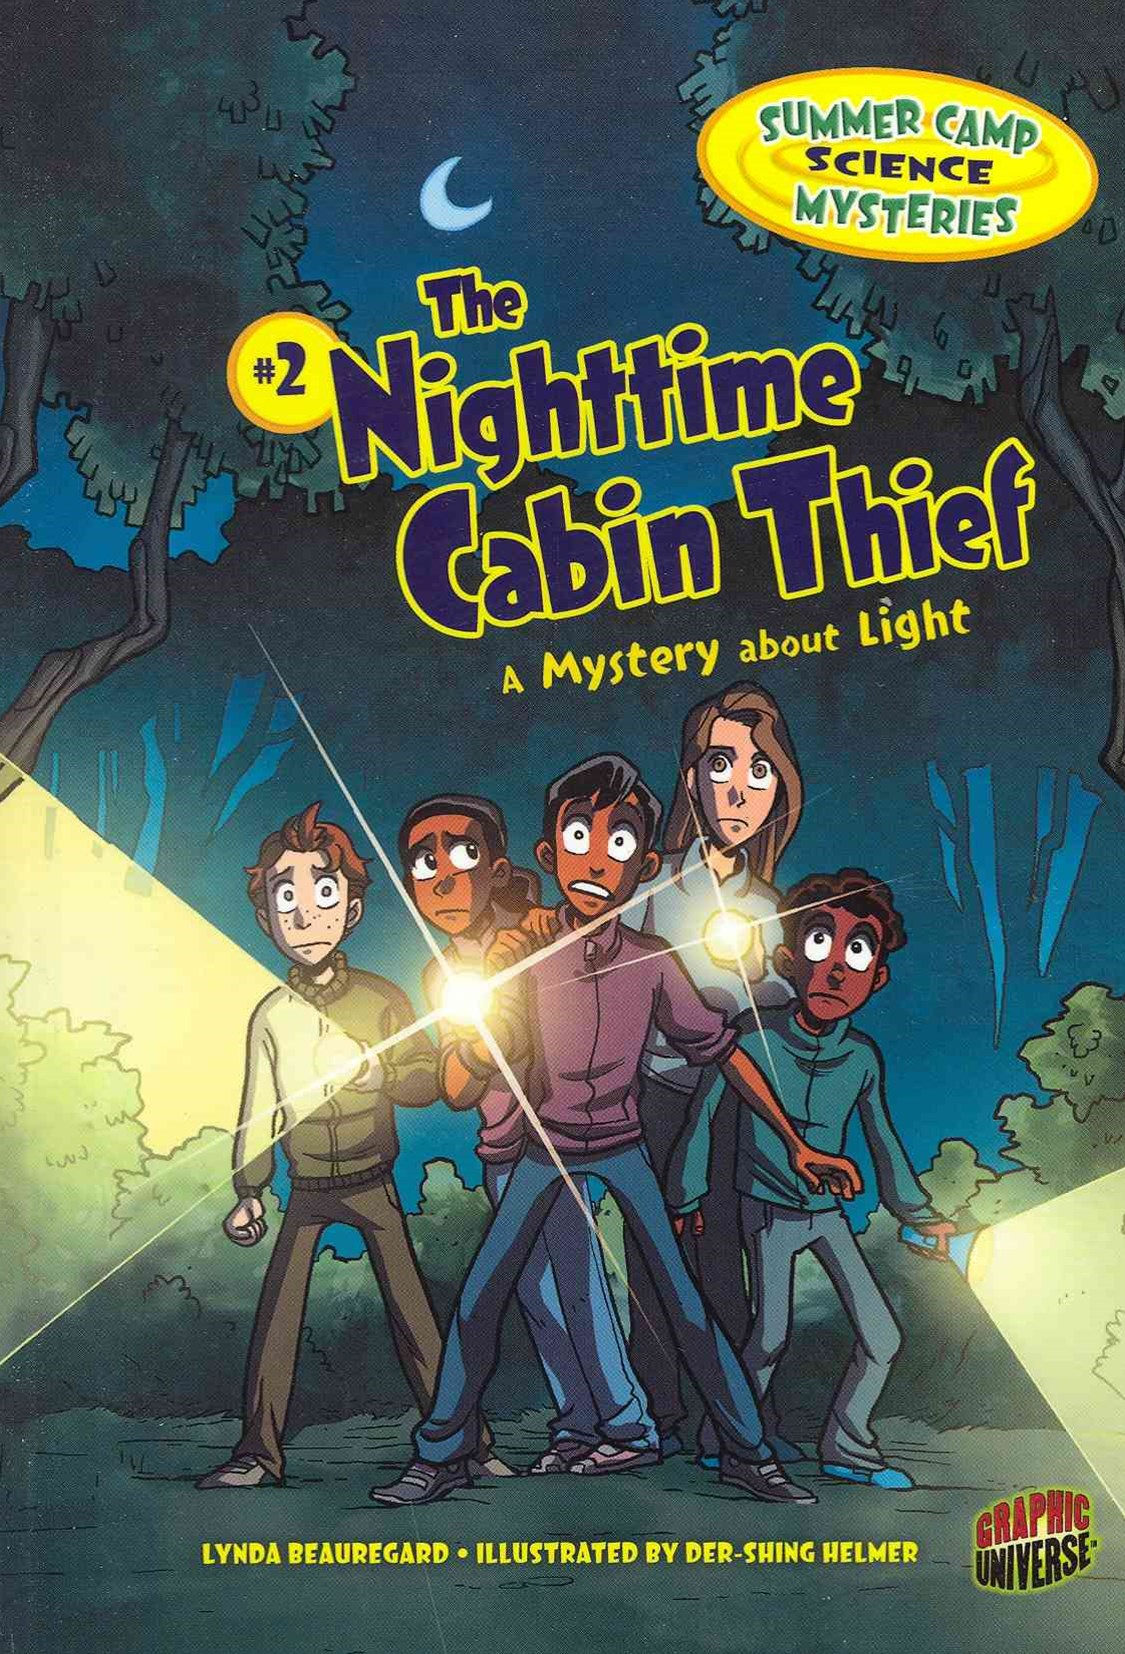 The Nightime Cabin Thief - A Mystery About Light - Summer Camp Science Mysteries